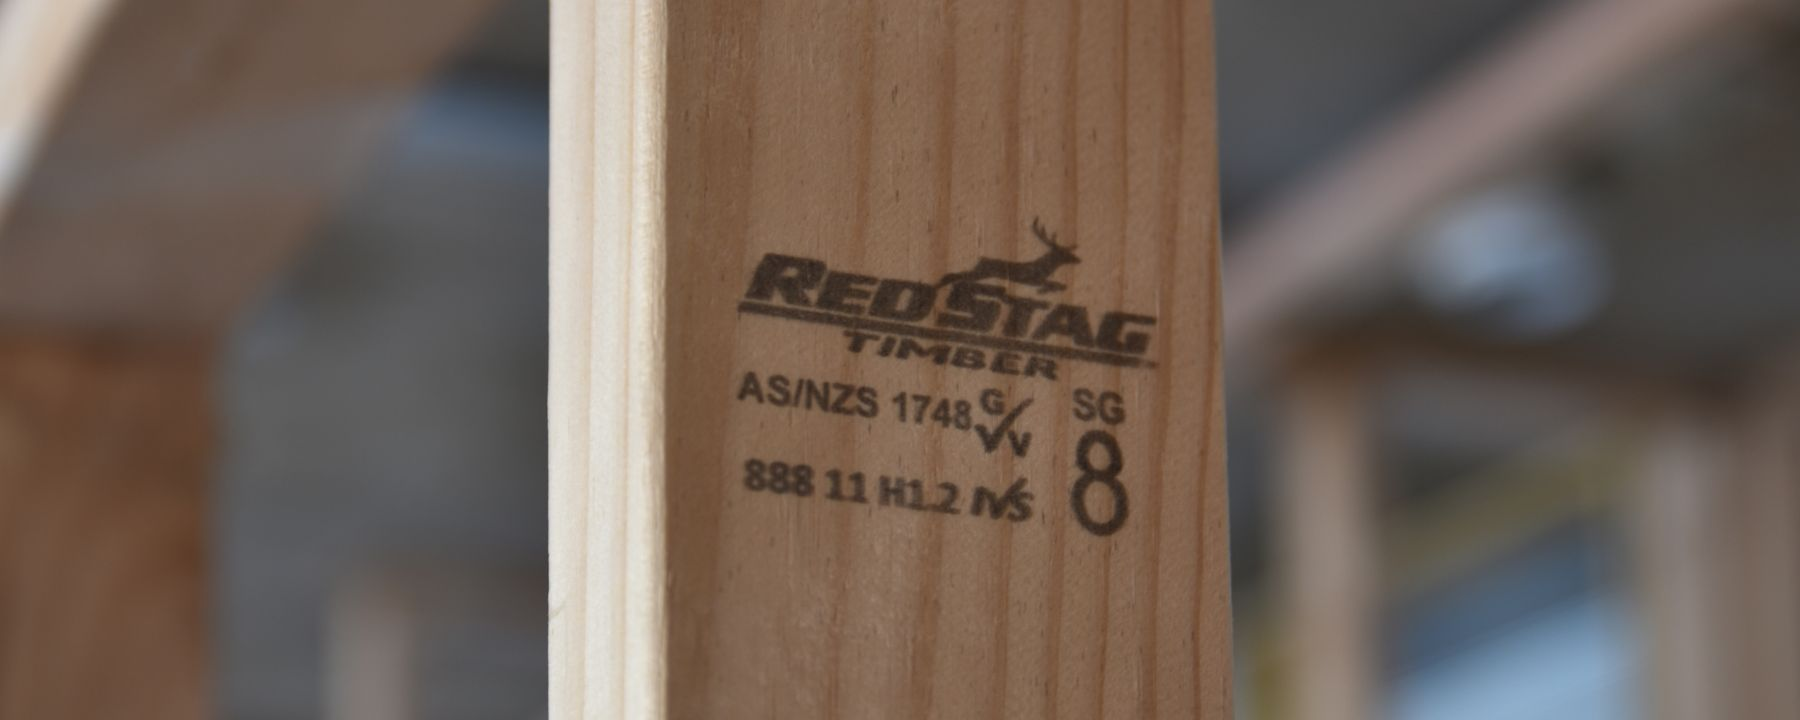 Red Stag Timber :: Home